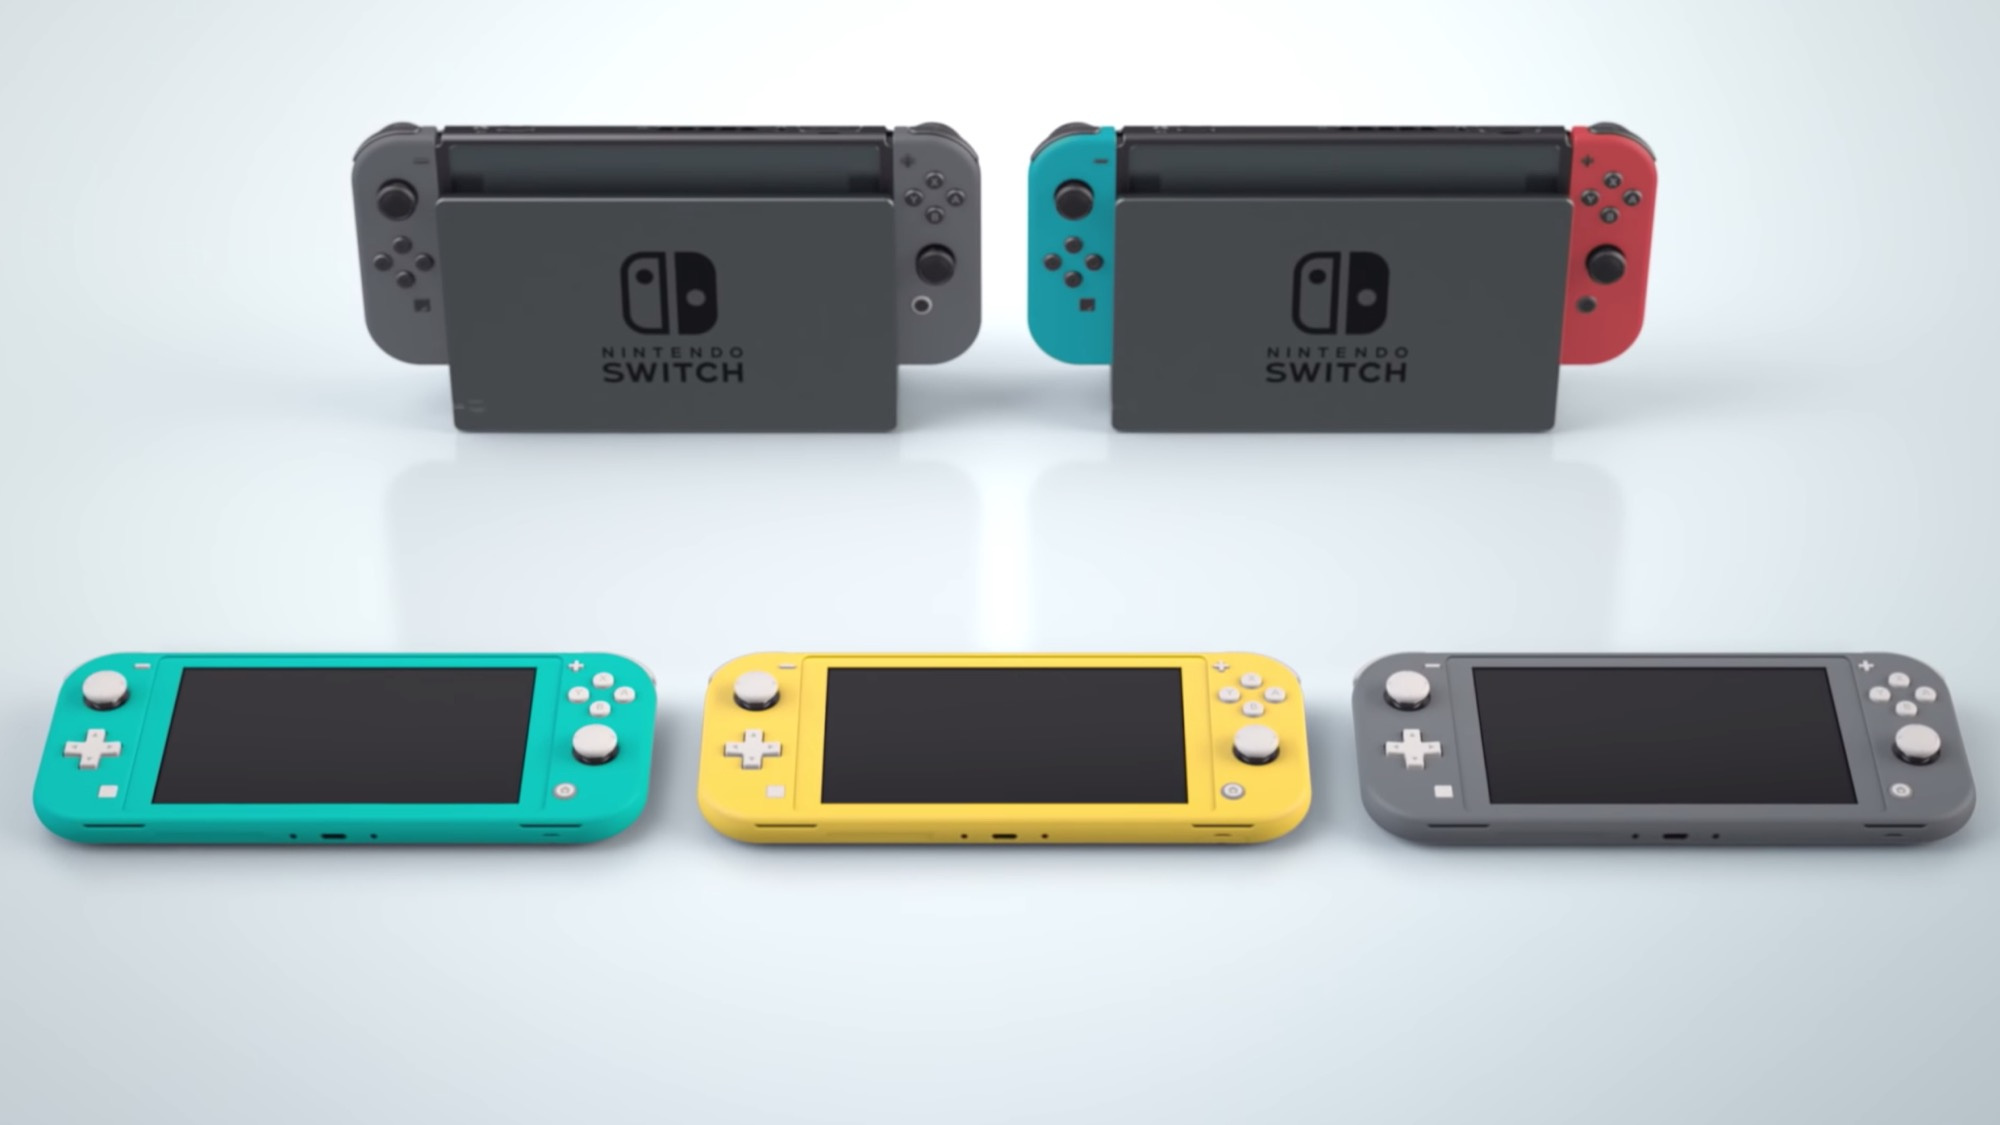 Nintendo Switch sales surpass 10 million in Europe